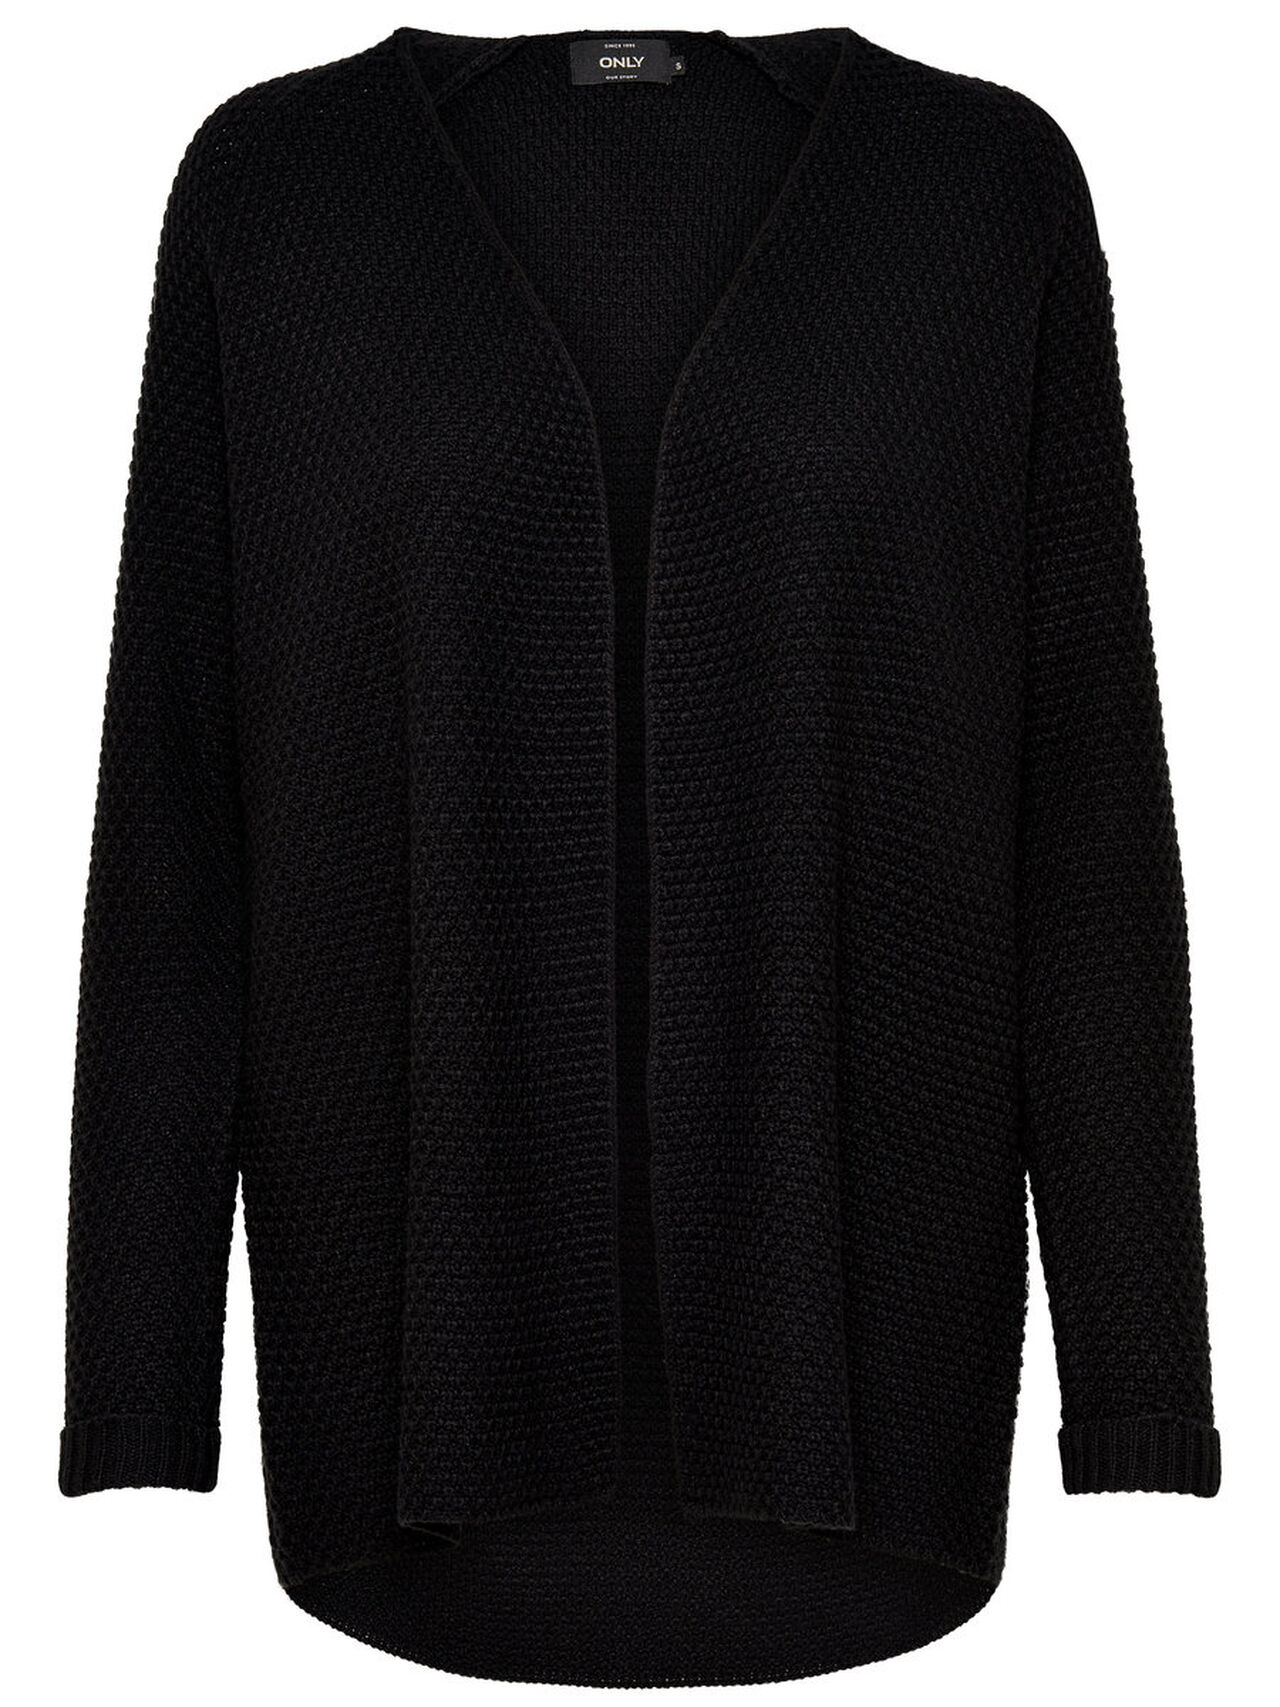 ONLY Loose Knitted Cardigan Women Black